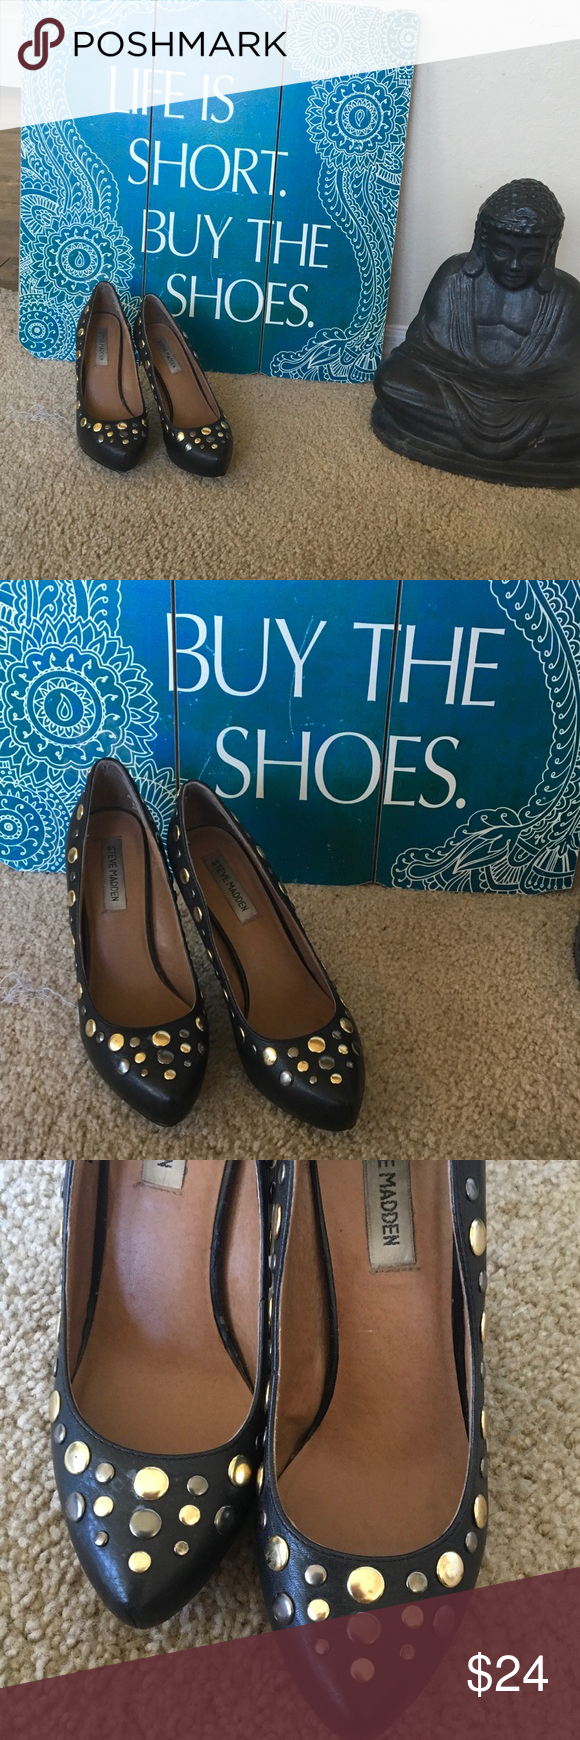 "Steve MADDEN ""VICIOUS"" BLACK Leather w/ studs 6.5M STeve MADDEN fun black leather gold & Gun metal tone varying studs surround foot. 4 1/4"" leather heel. Some studs have scratches, overall  look is great. 💛🔘💛🔘💛🔘 Steve Madden Shoes Heels"